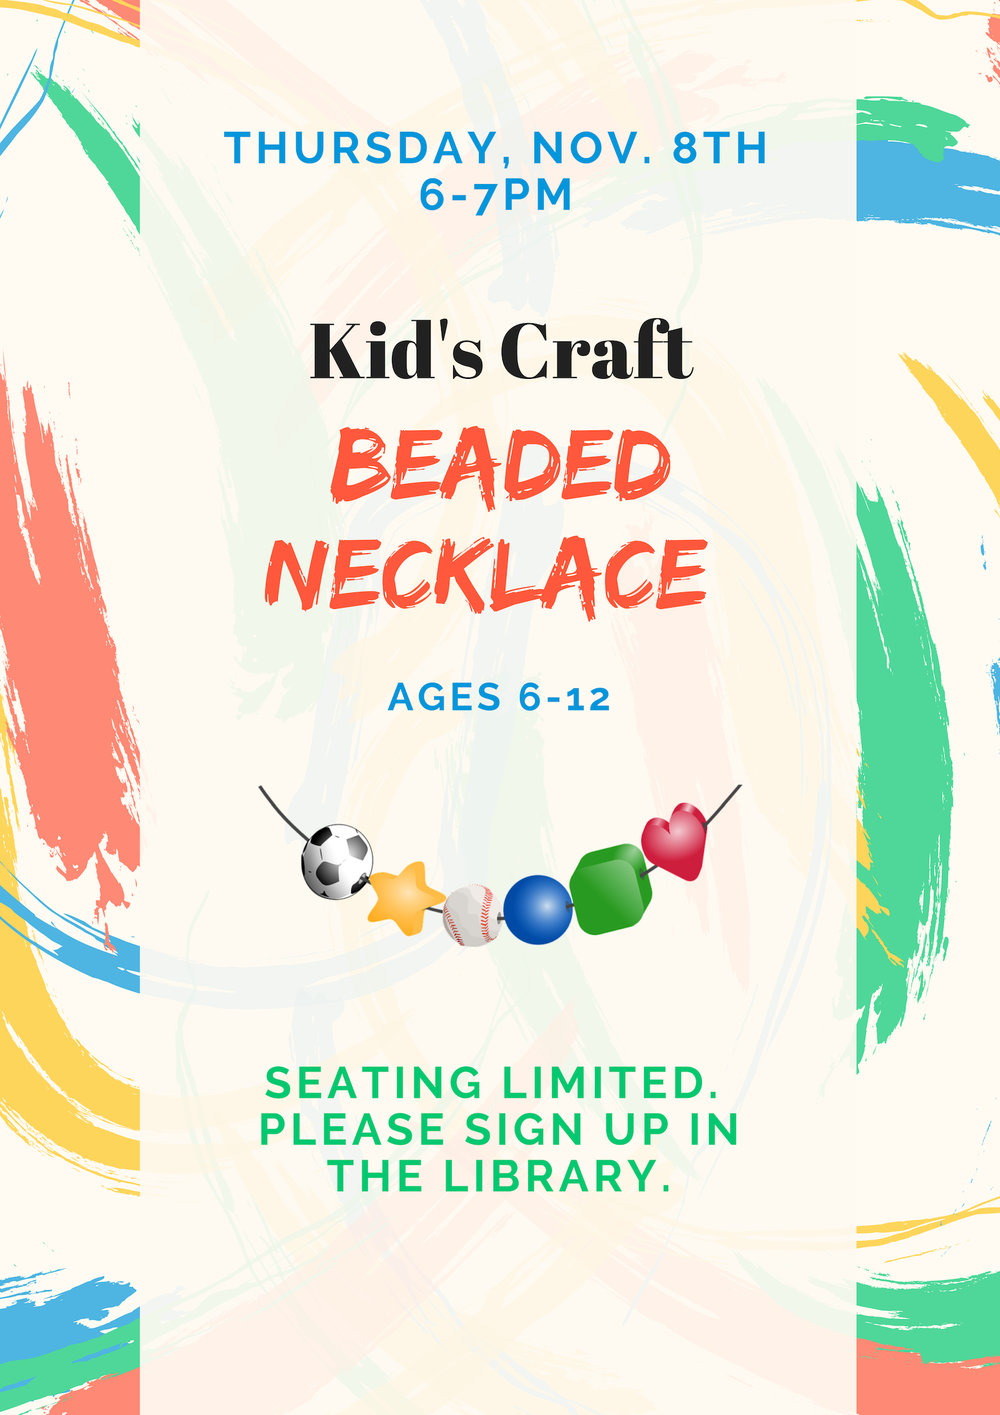 Kid's Craft Beaded Necklace Nov. 8.jpg